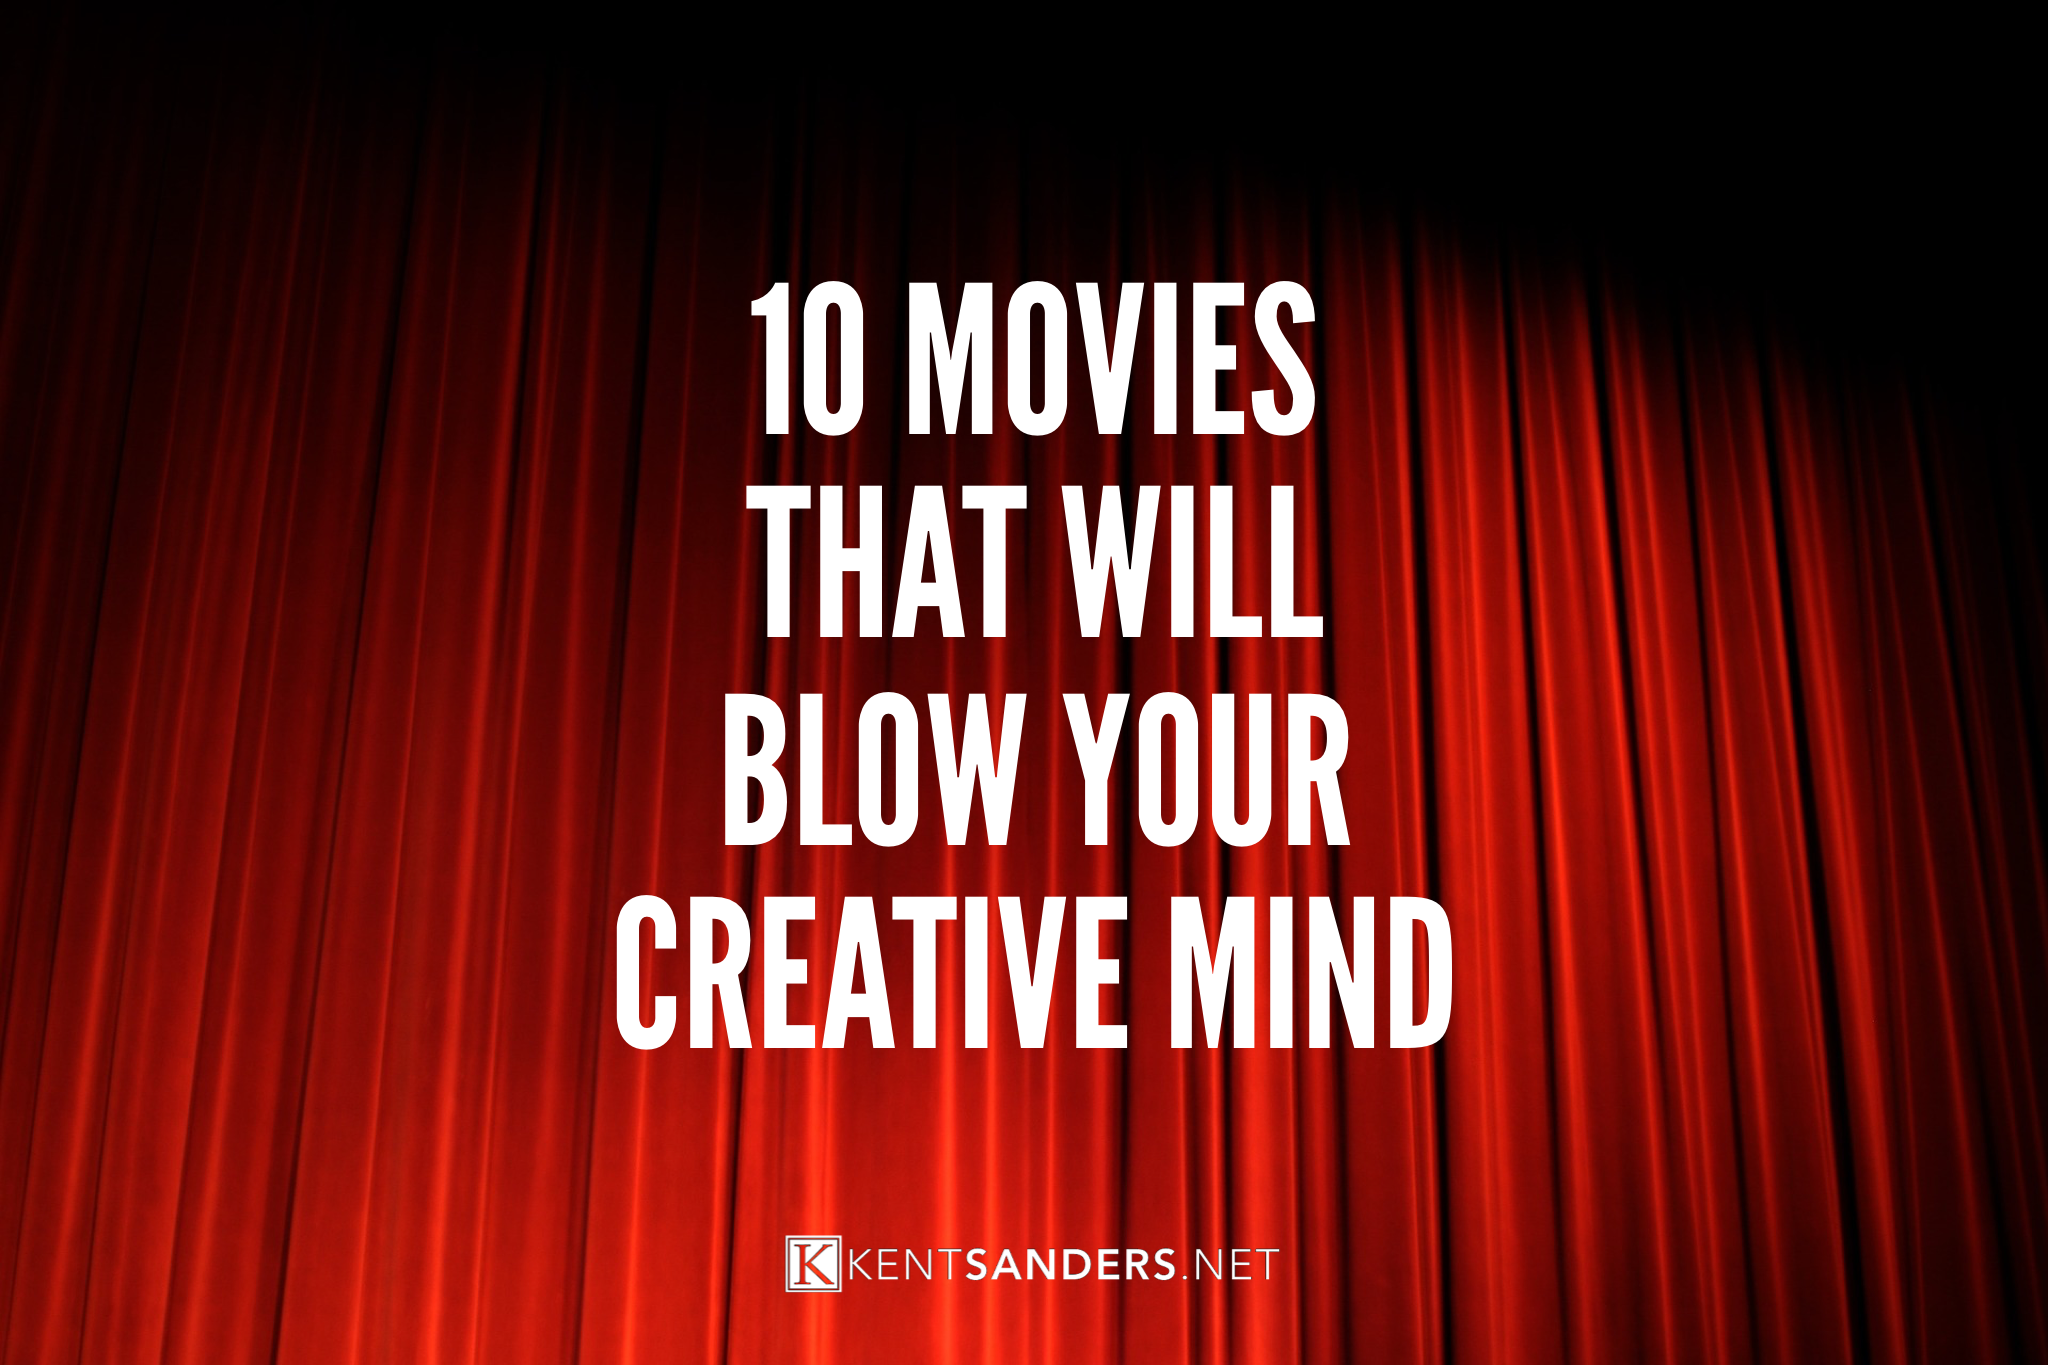 Movies That Will Blow Your Creative Mind - Powerful animation shows how society destroys our creativity